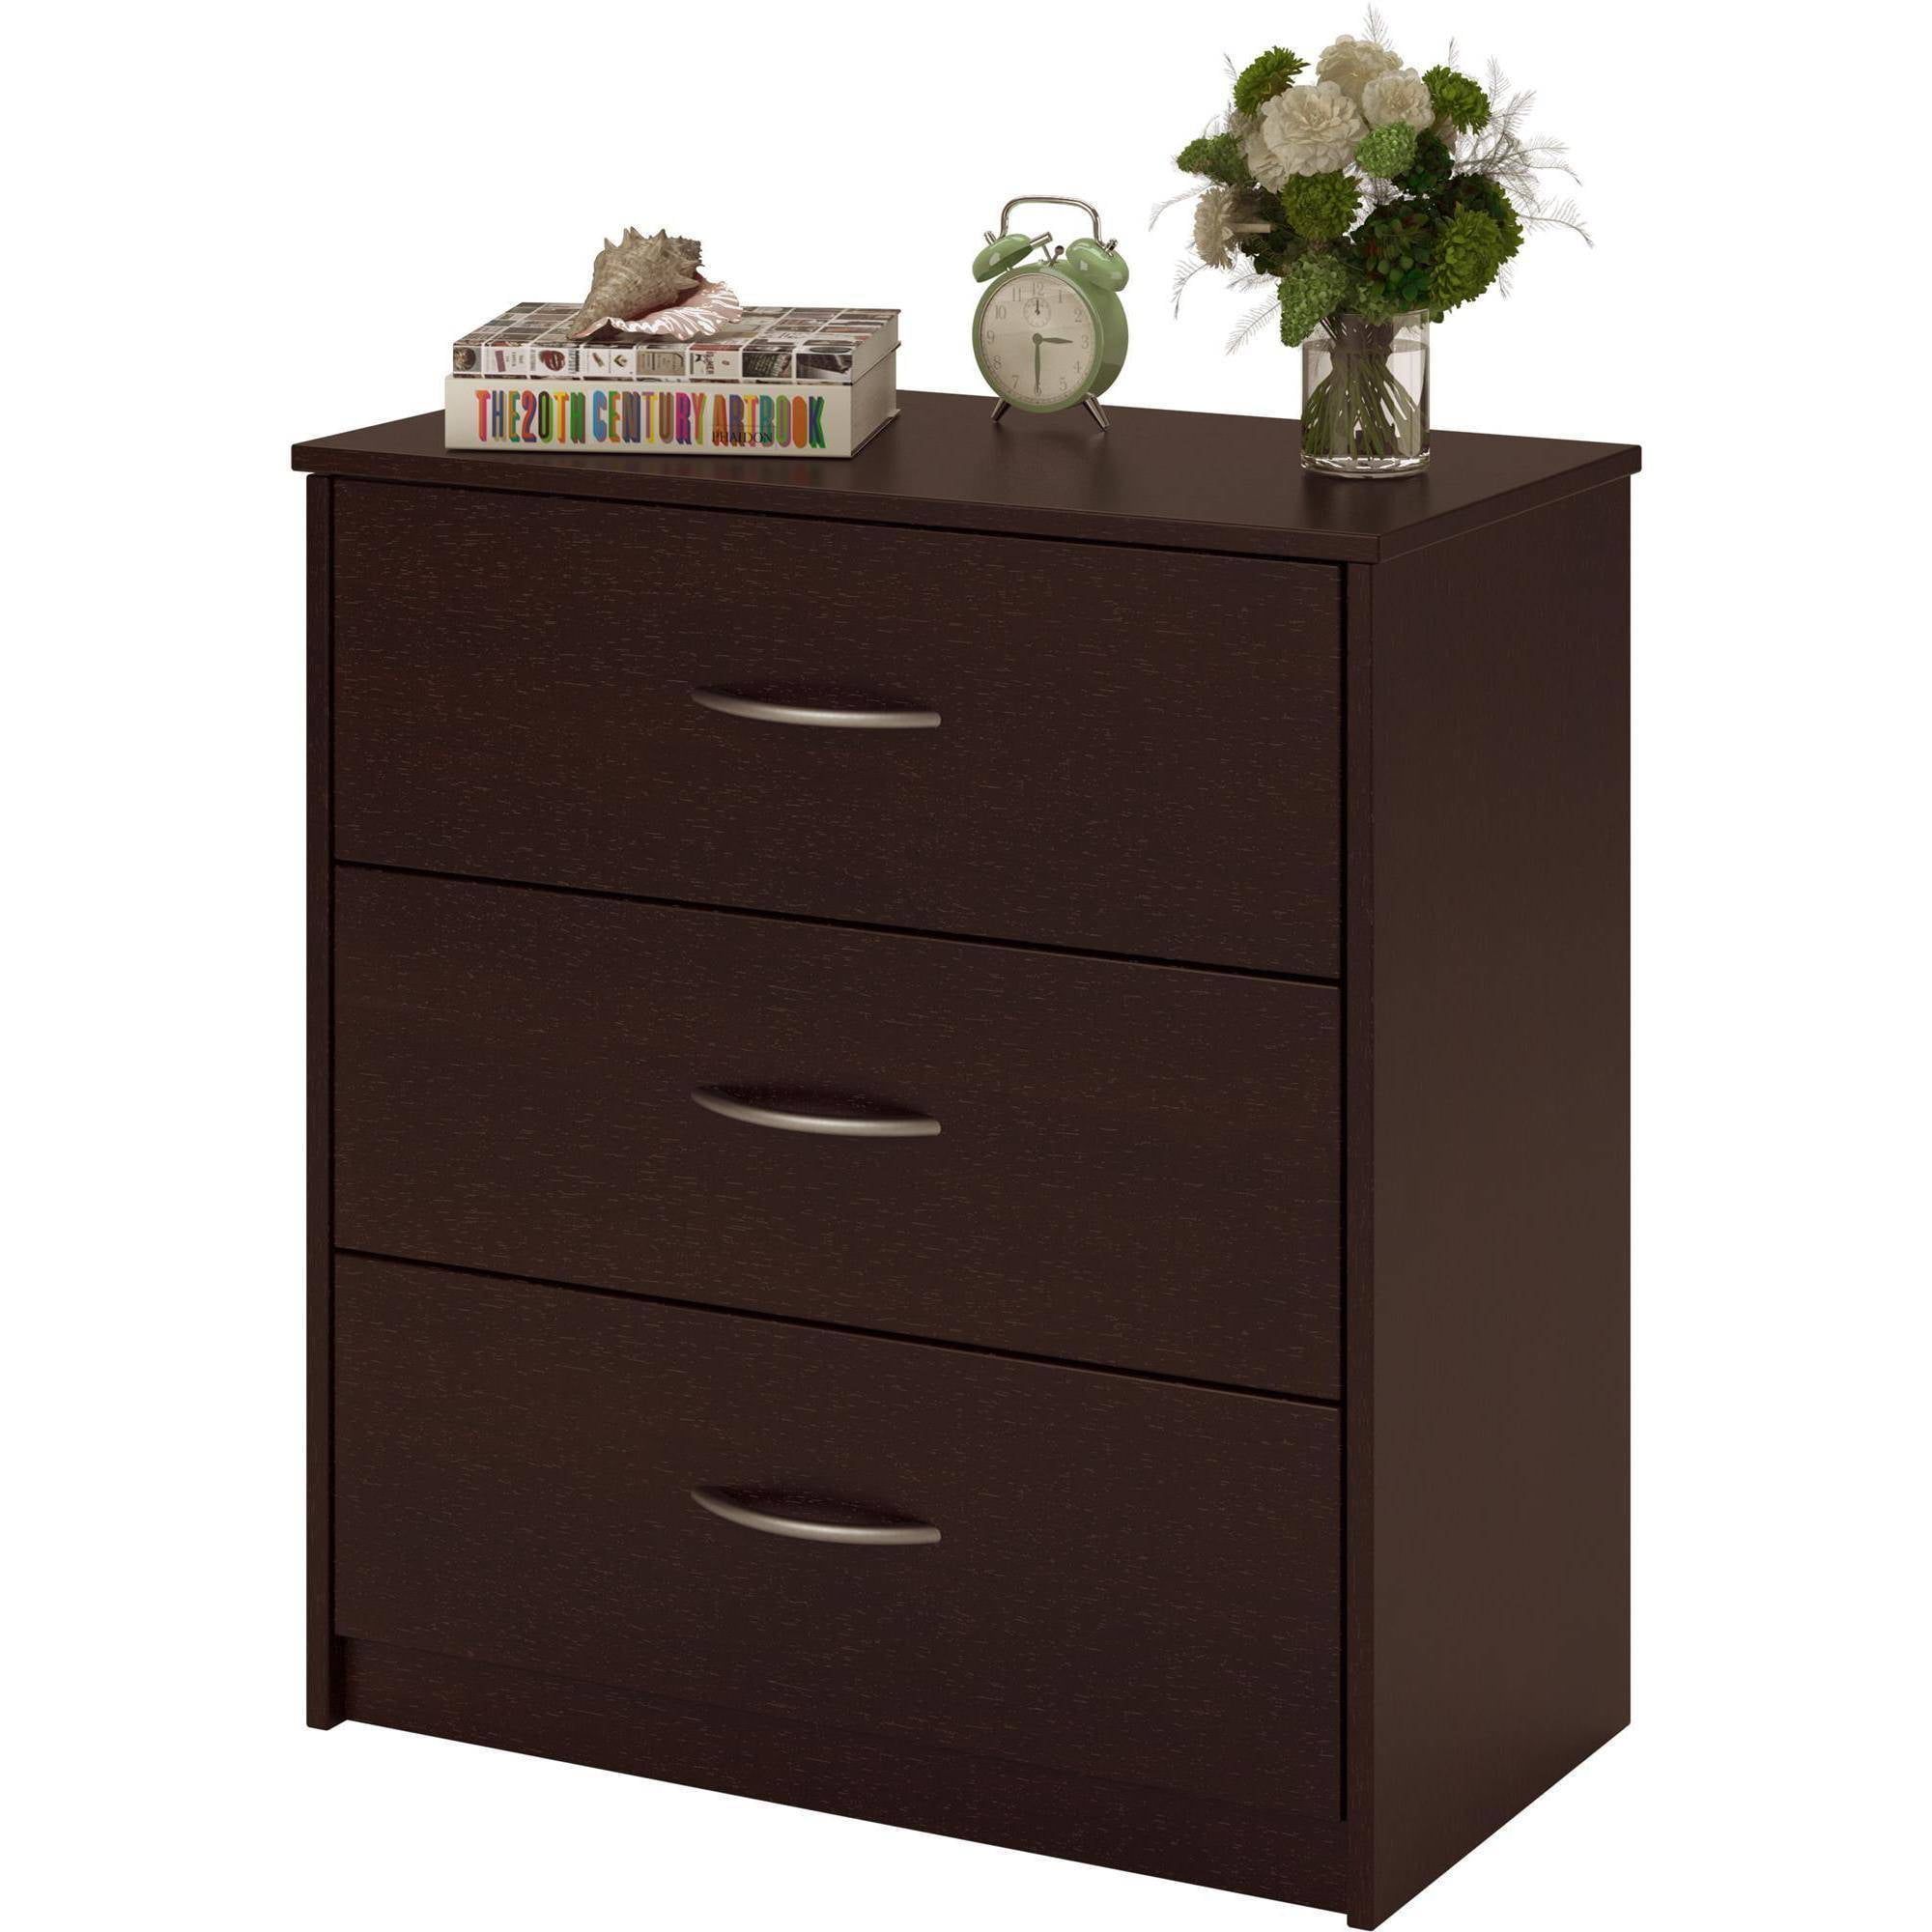 3 drawer dresser chest bedroom furniture black brown white for Bedroom dressers